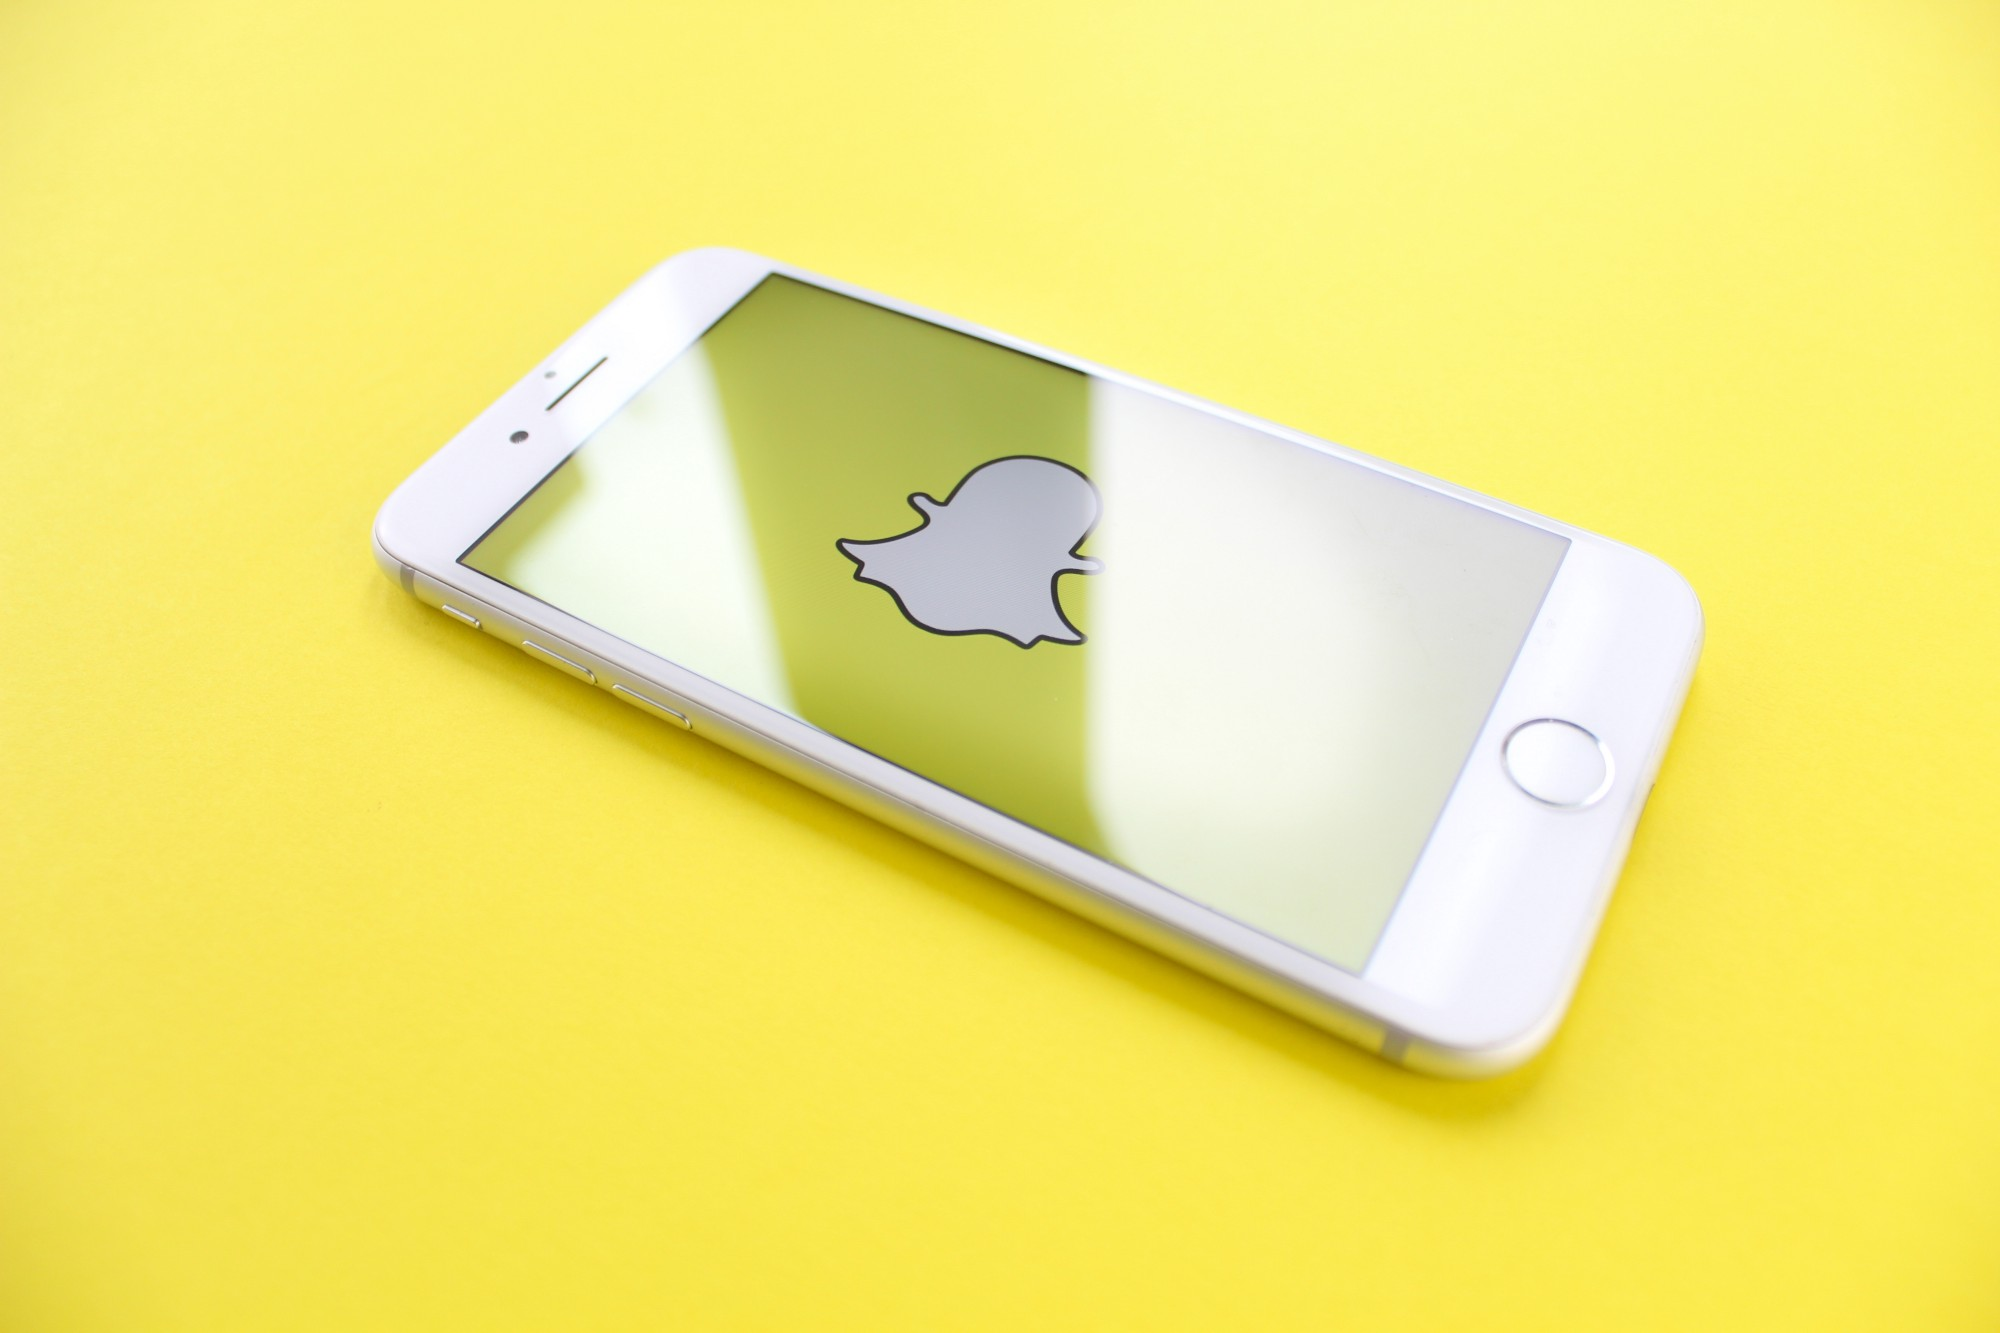 iPhone on yellow surface displaying Snapchat logo